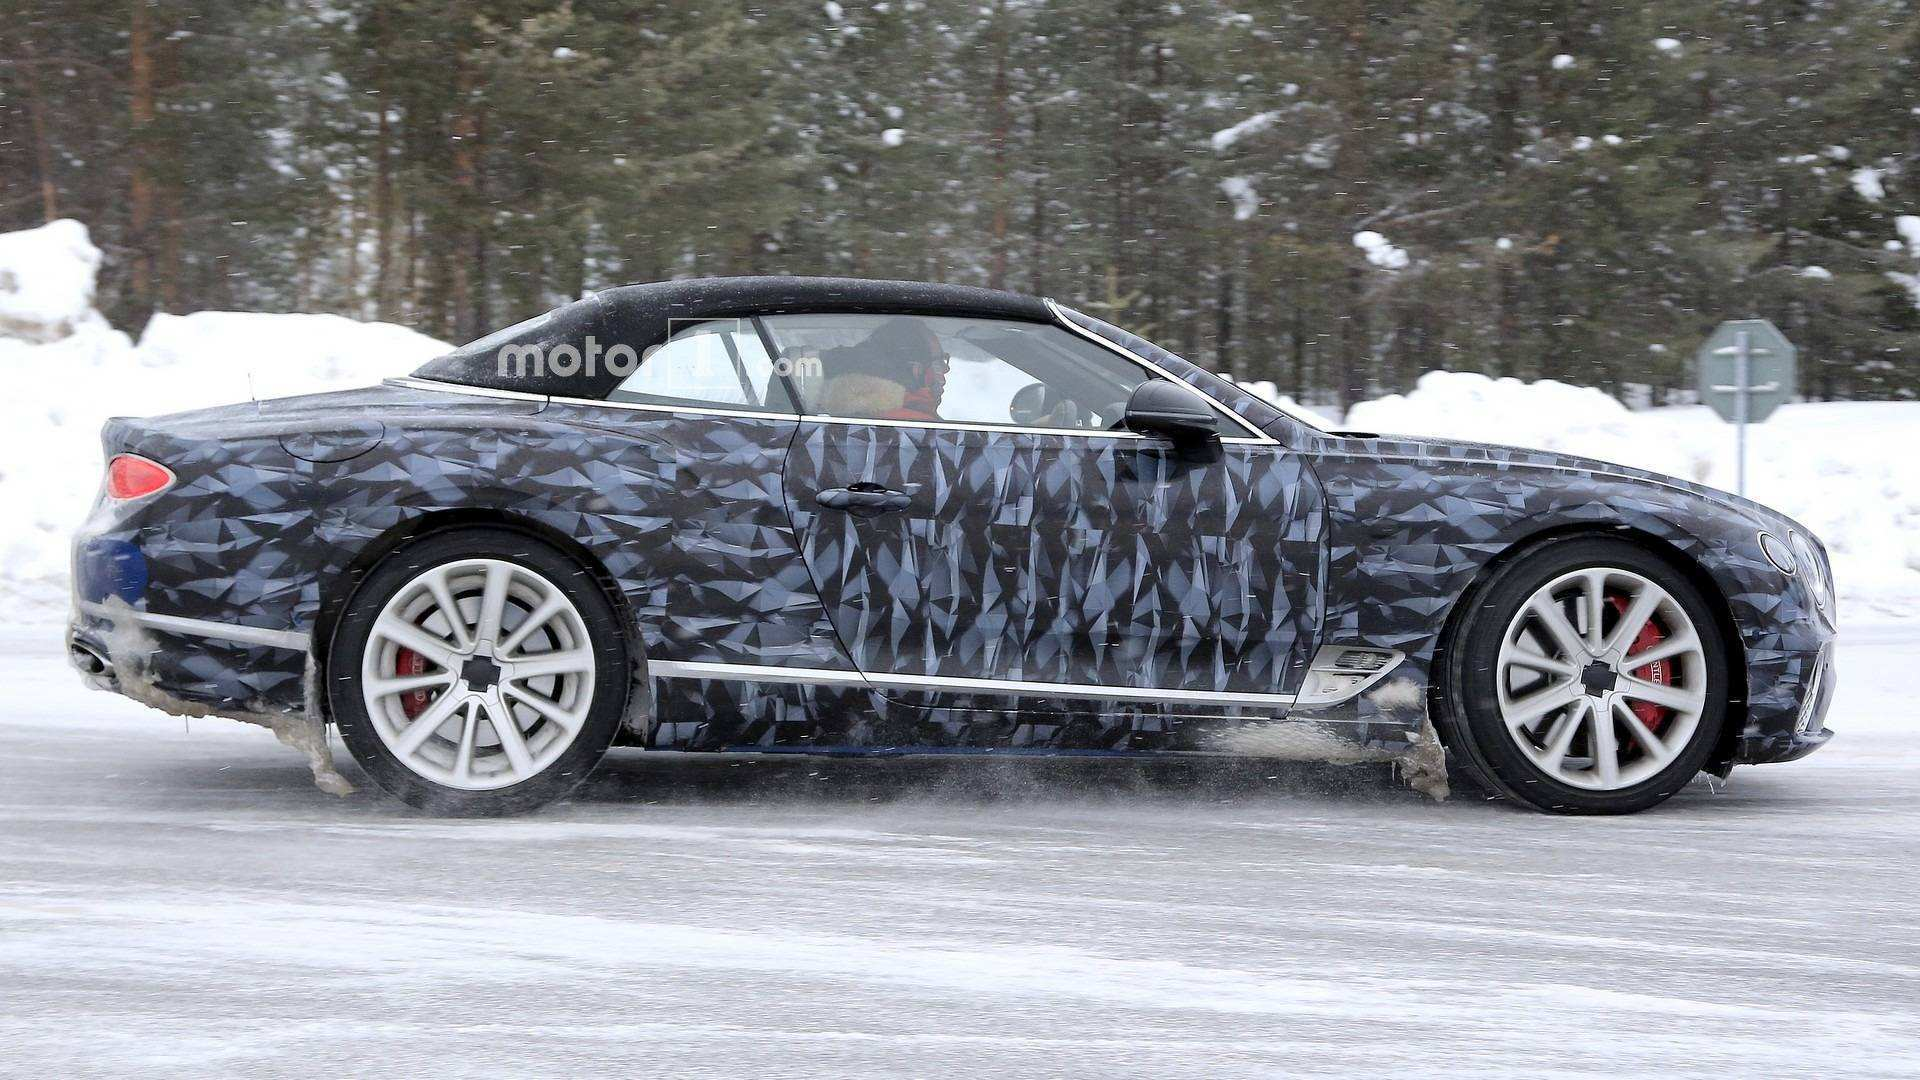 73 All New 2019 Bentley Gt V8 Picture with 2019 Bentley Gt V8